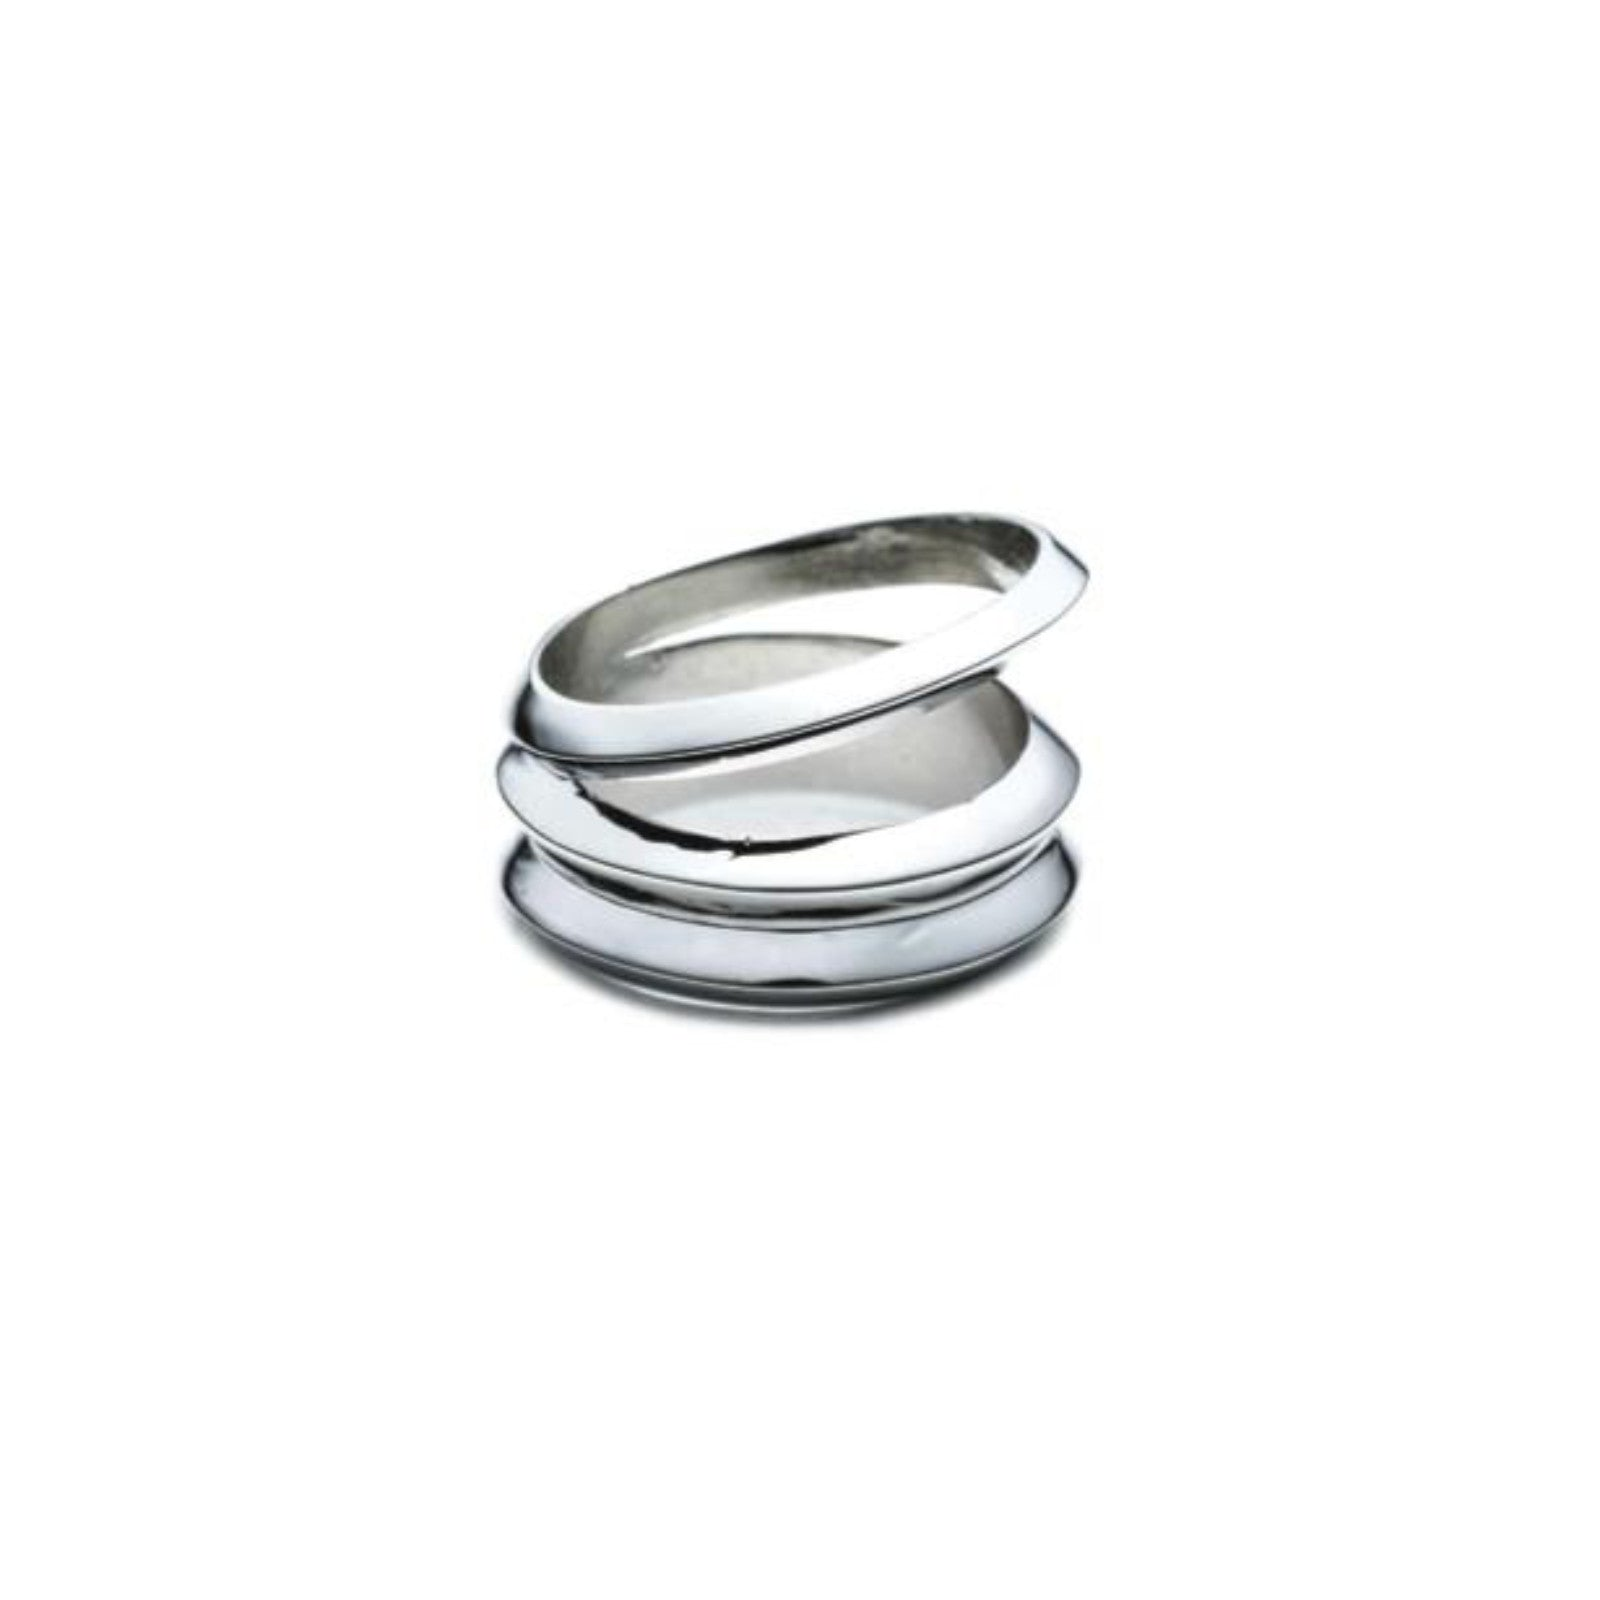 HEDRON THREE ROW RING - SILVER PLATED BRASS